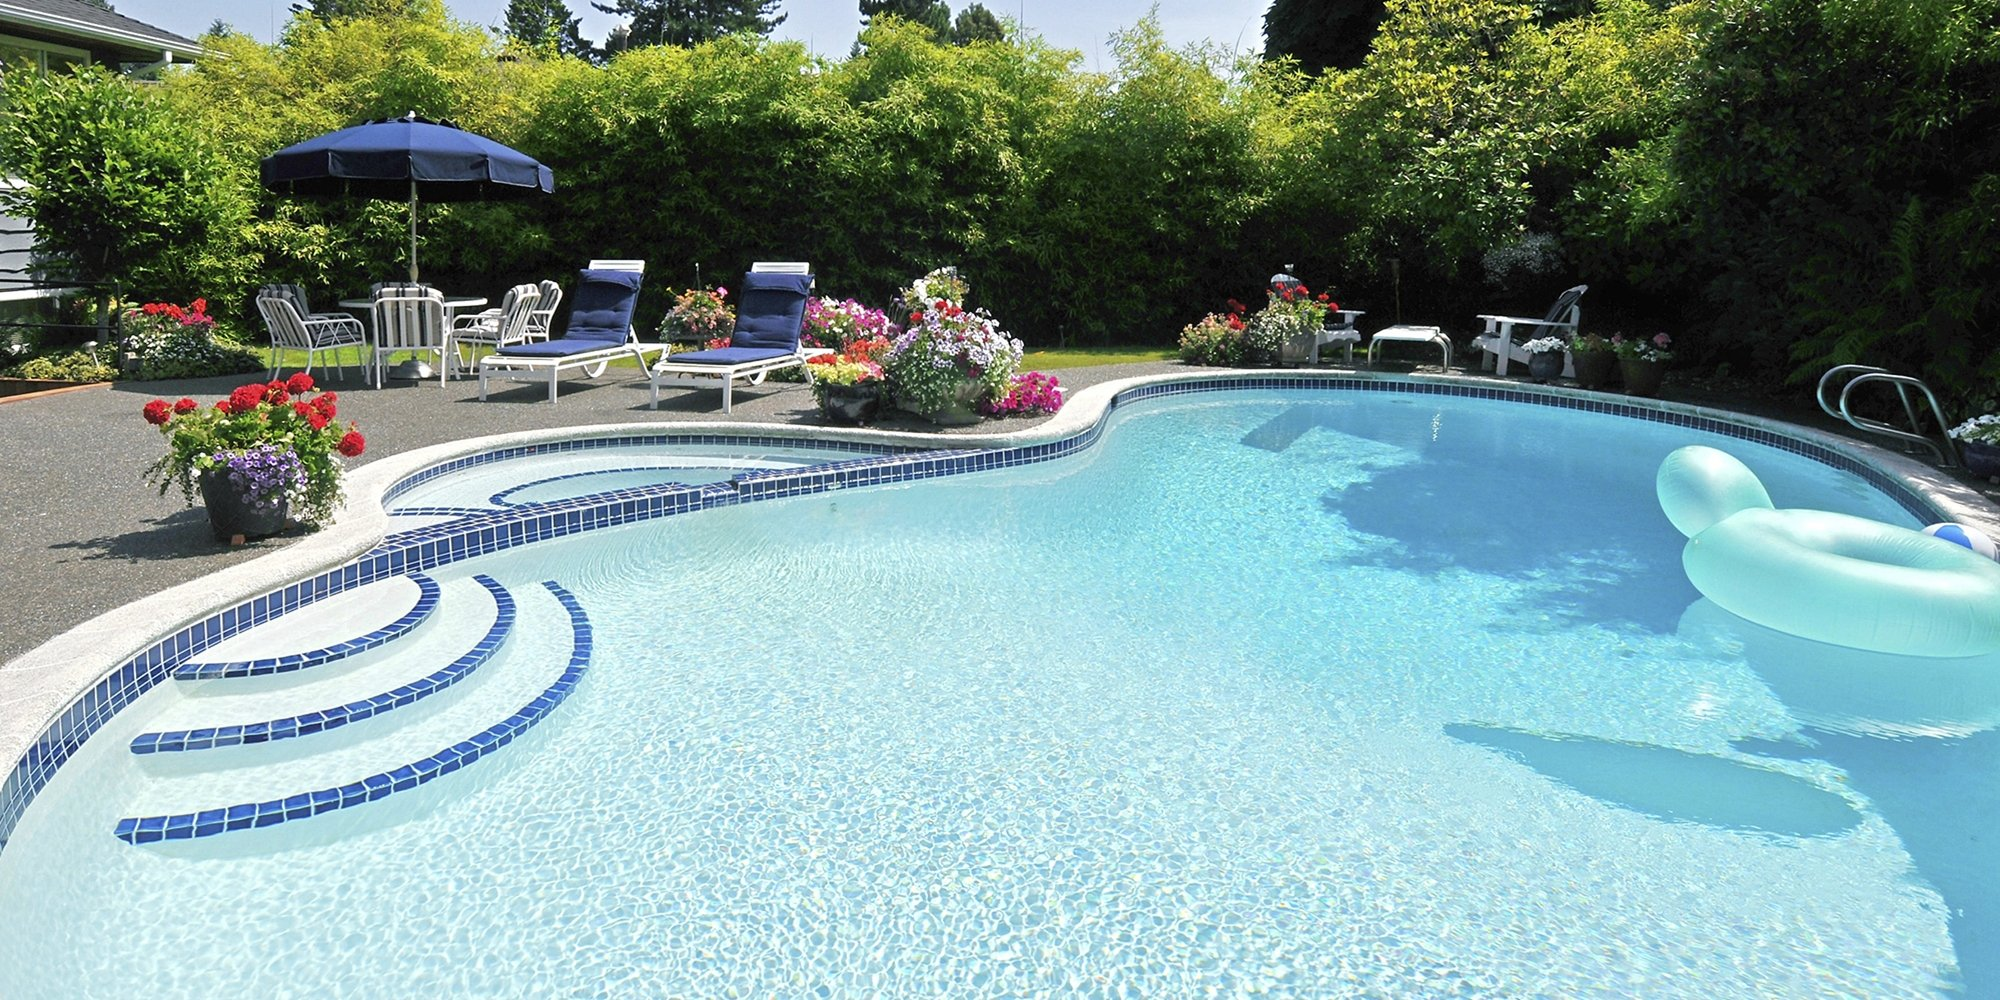 Swimming pool renovations aaa pool service for Pool renovations